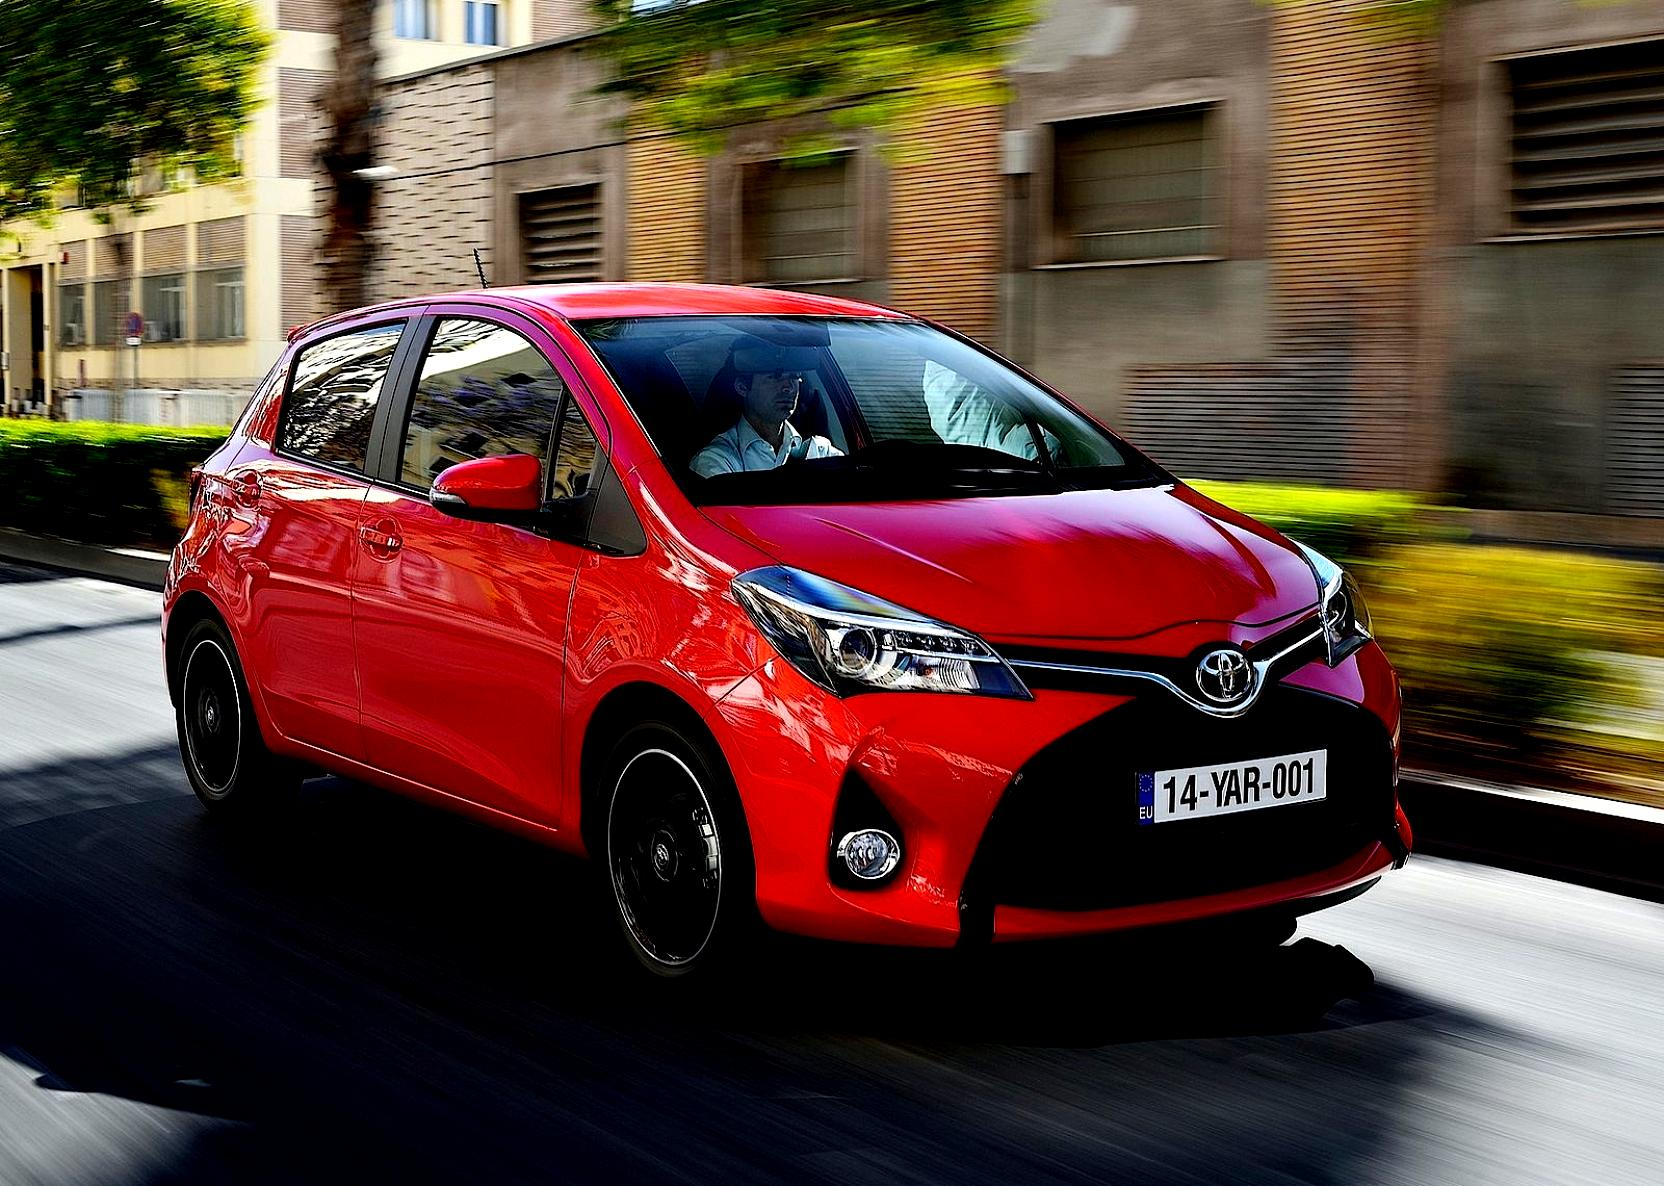 marketing mix of toyota yaris Edmunds has detailed price information for the used 2012 toyota yaris you need more than just targeted marketing but there's still enough comfort in the mix.